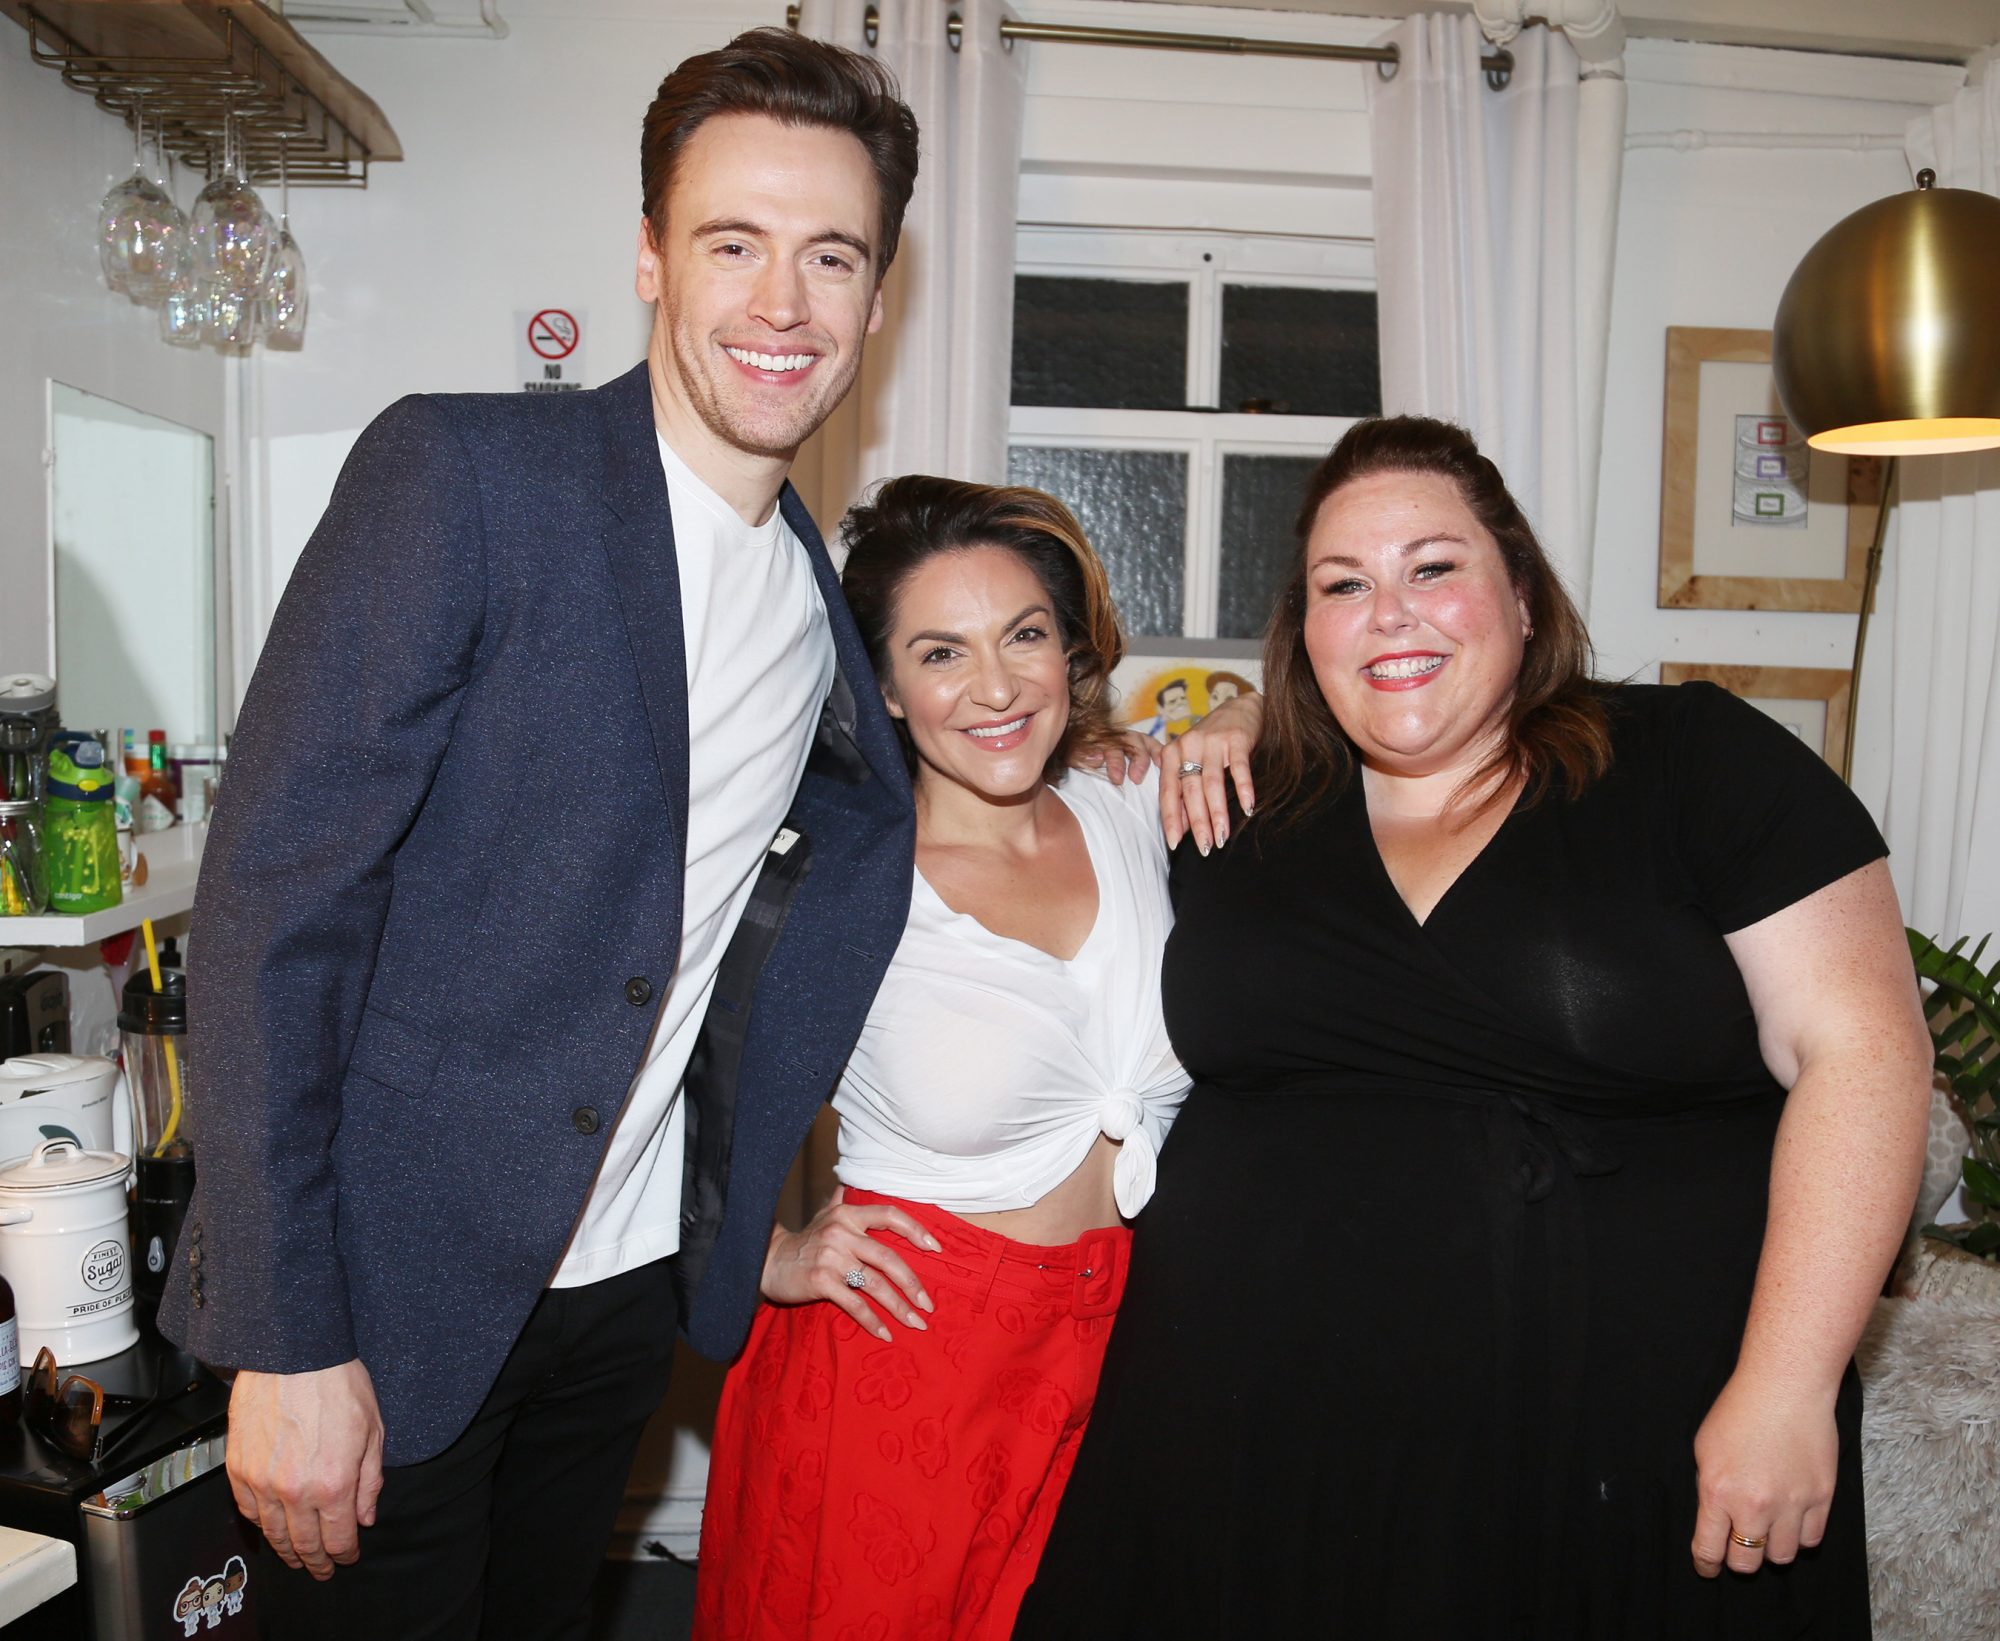 Chrissy Metz Visits Shoshana Bean and Erich Bergen